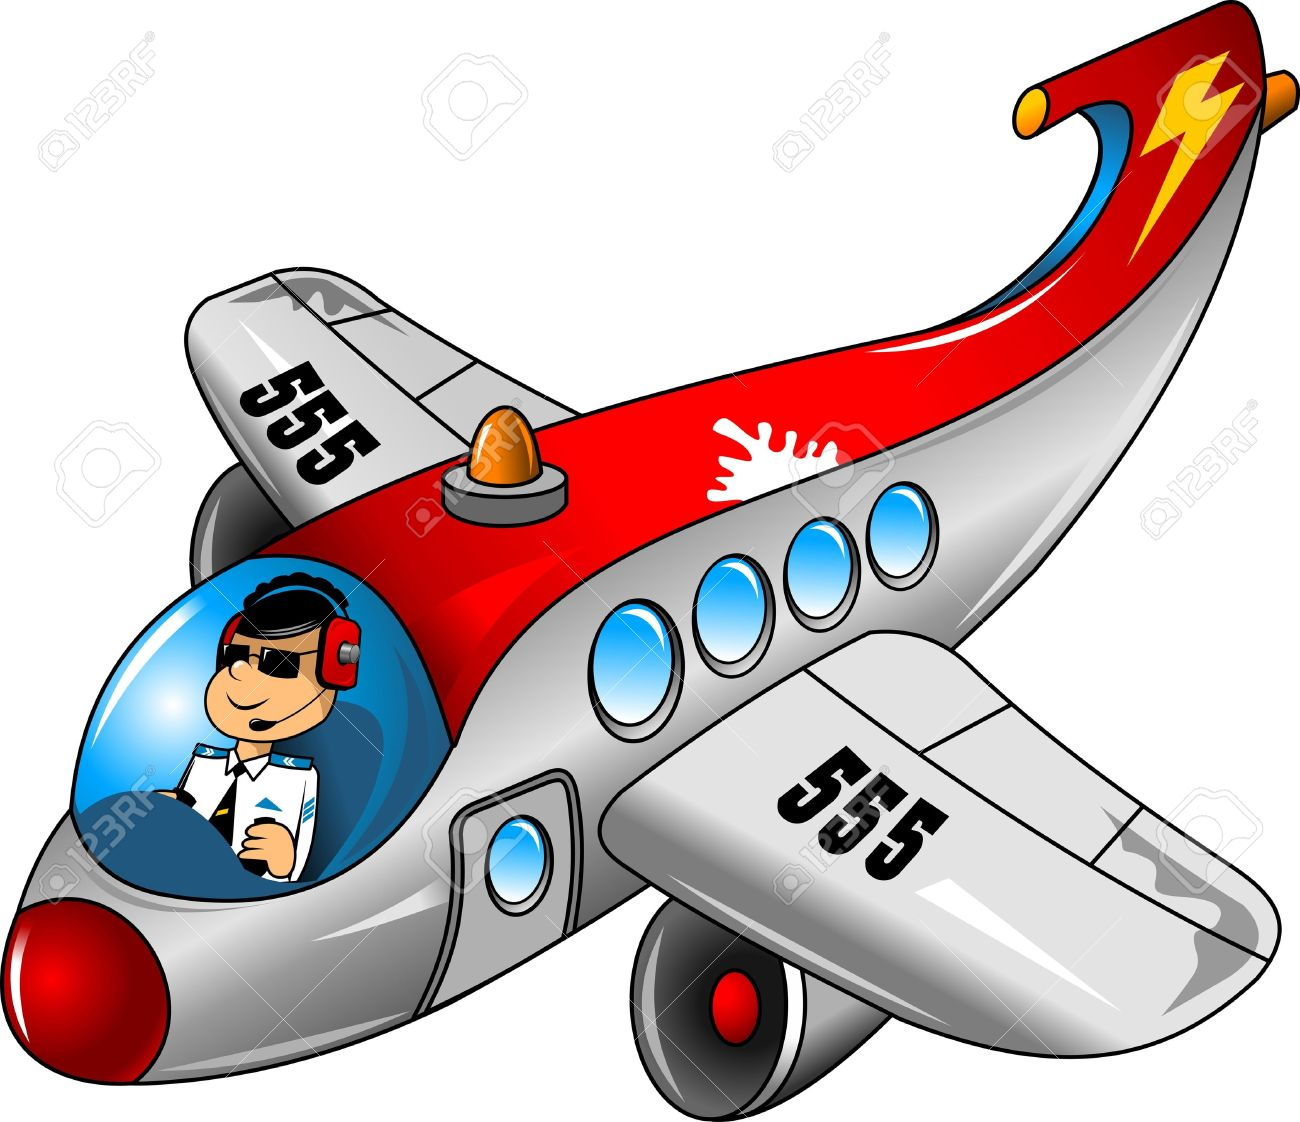 Fun On A Beautiful Airplane Pilot Royalty Free Cliparts, Vectors.